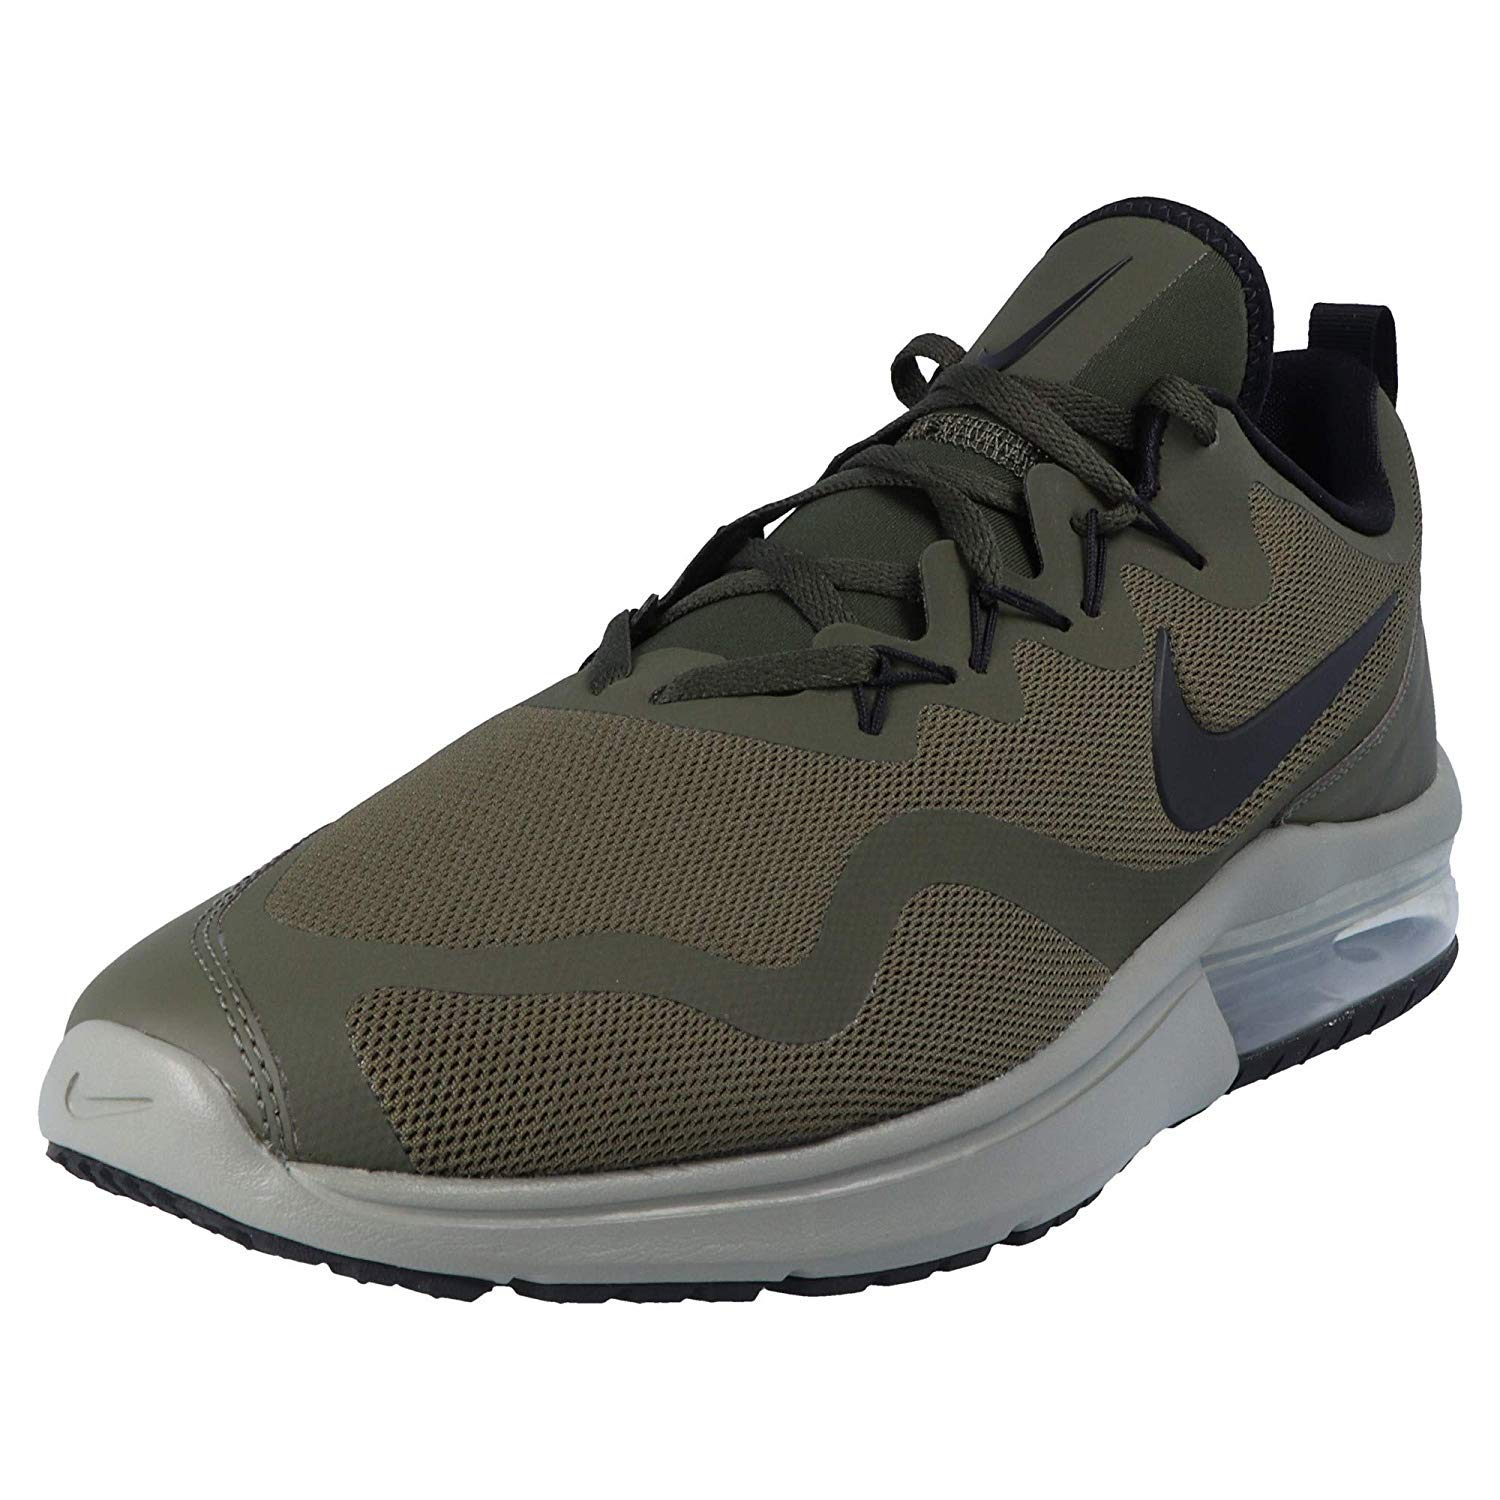 73081fd2ab8a3 Galleon - Nike Mens Air Max Fury Low Top Lace Up Running Sneaker ...